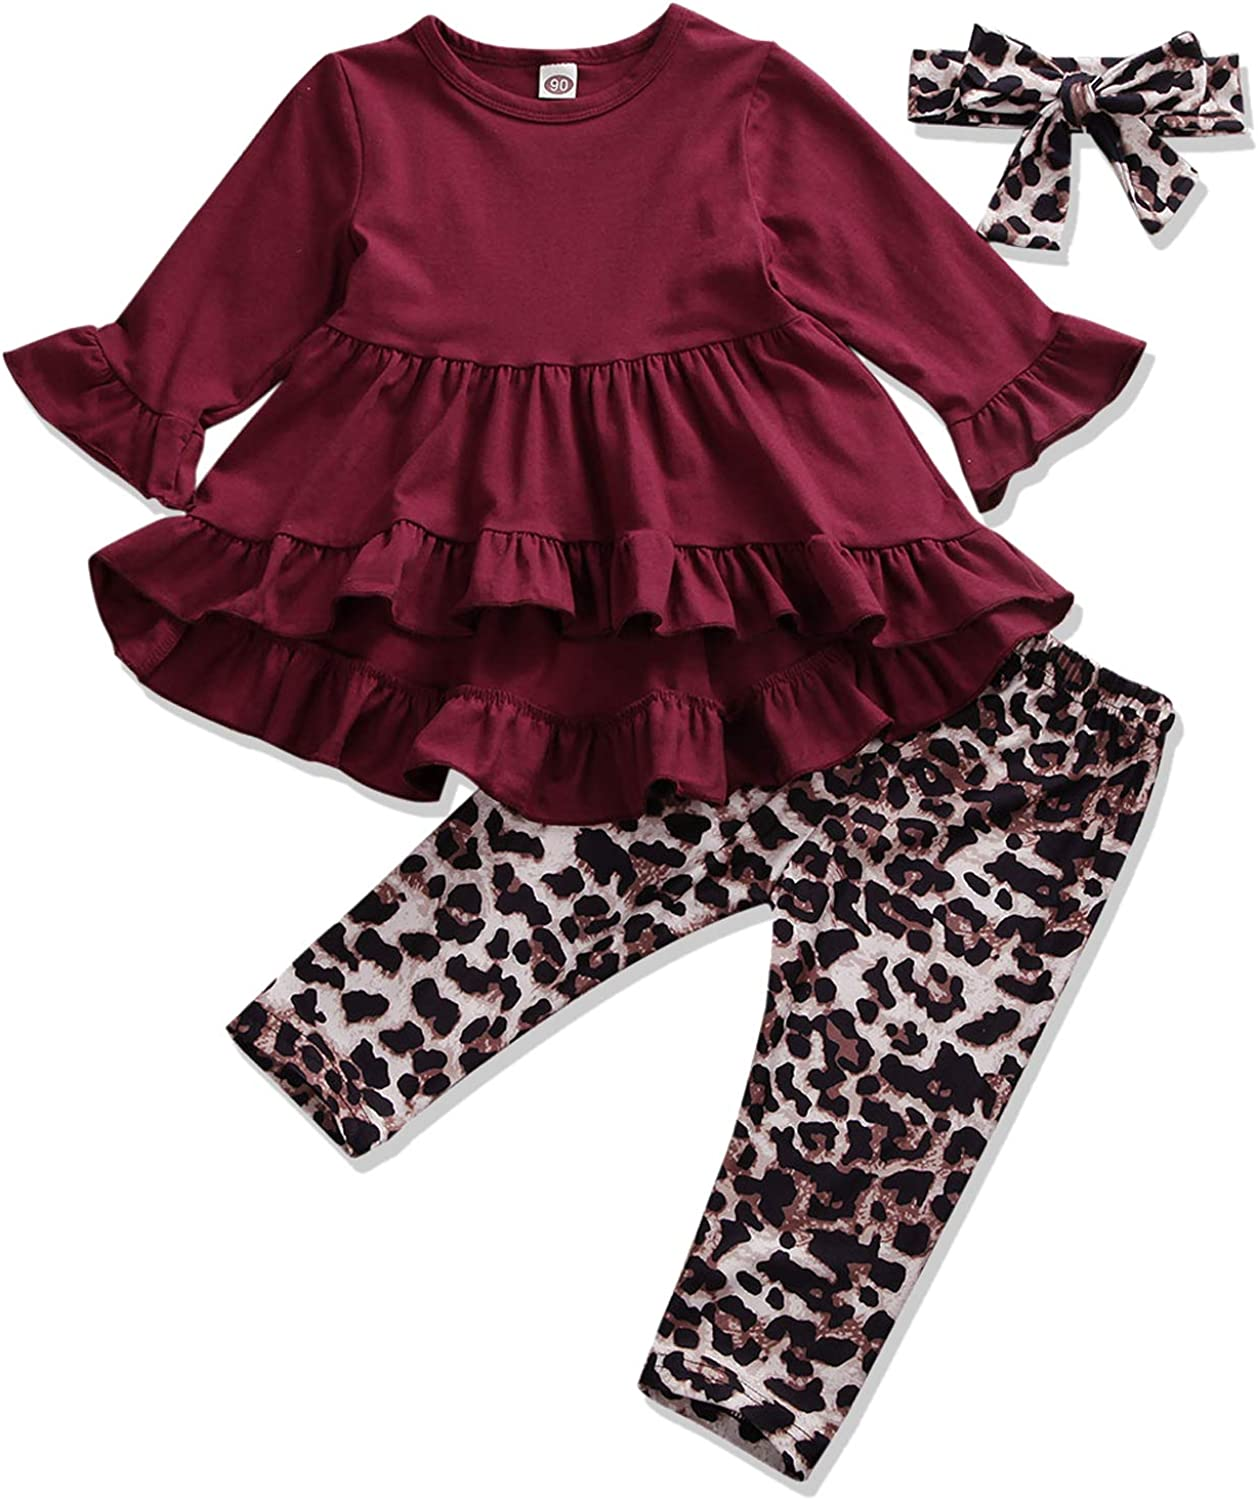 Toddler Baby Girls Fall Winter Outfits Clothes Long Sleeve Ruffle Tunic Tops Floral Pants Set